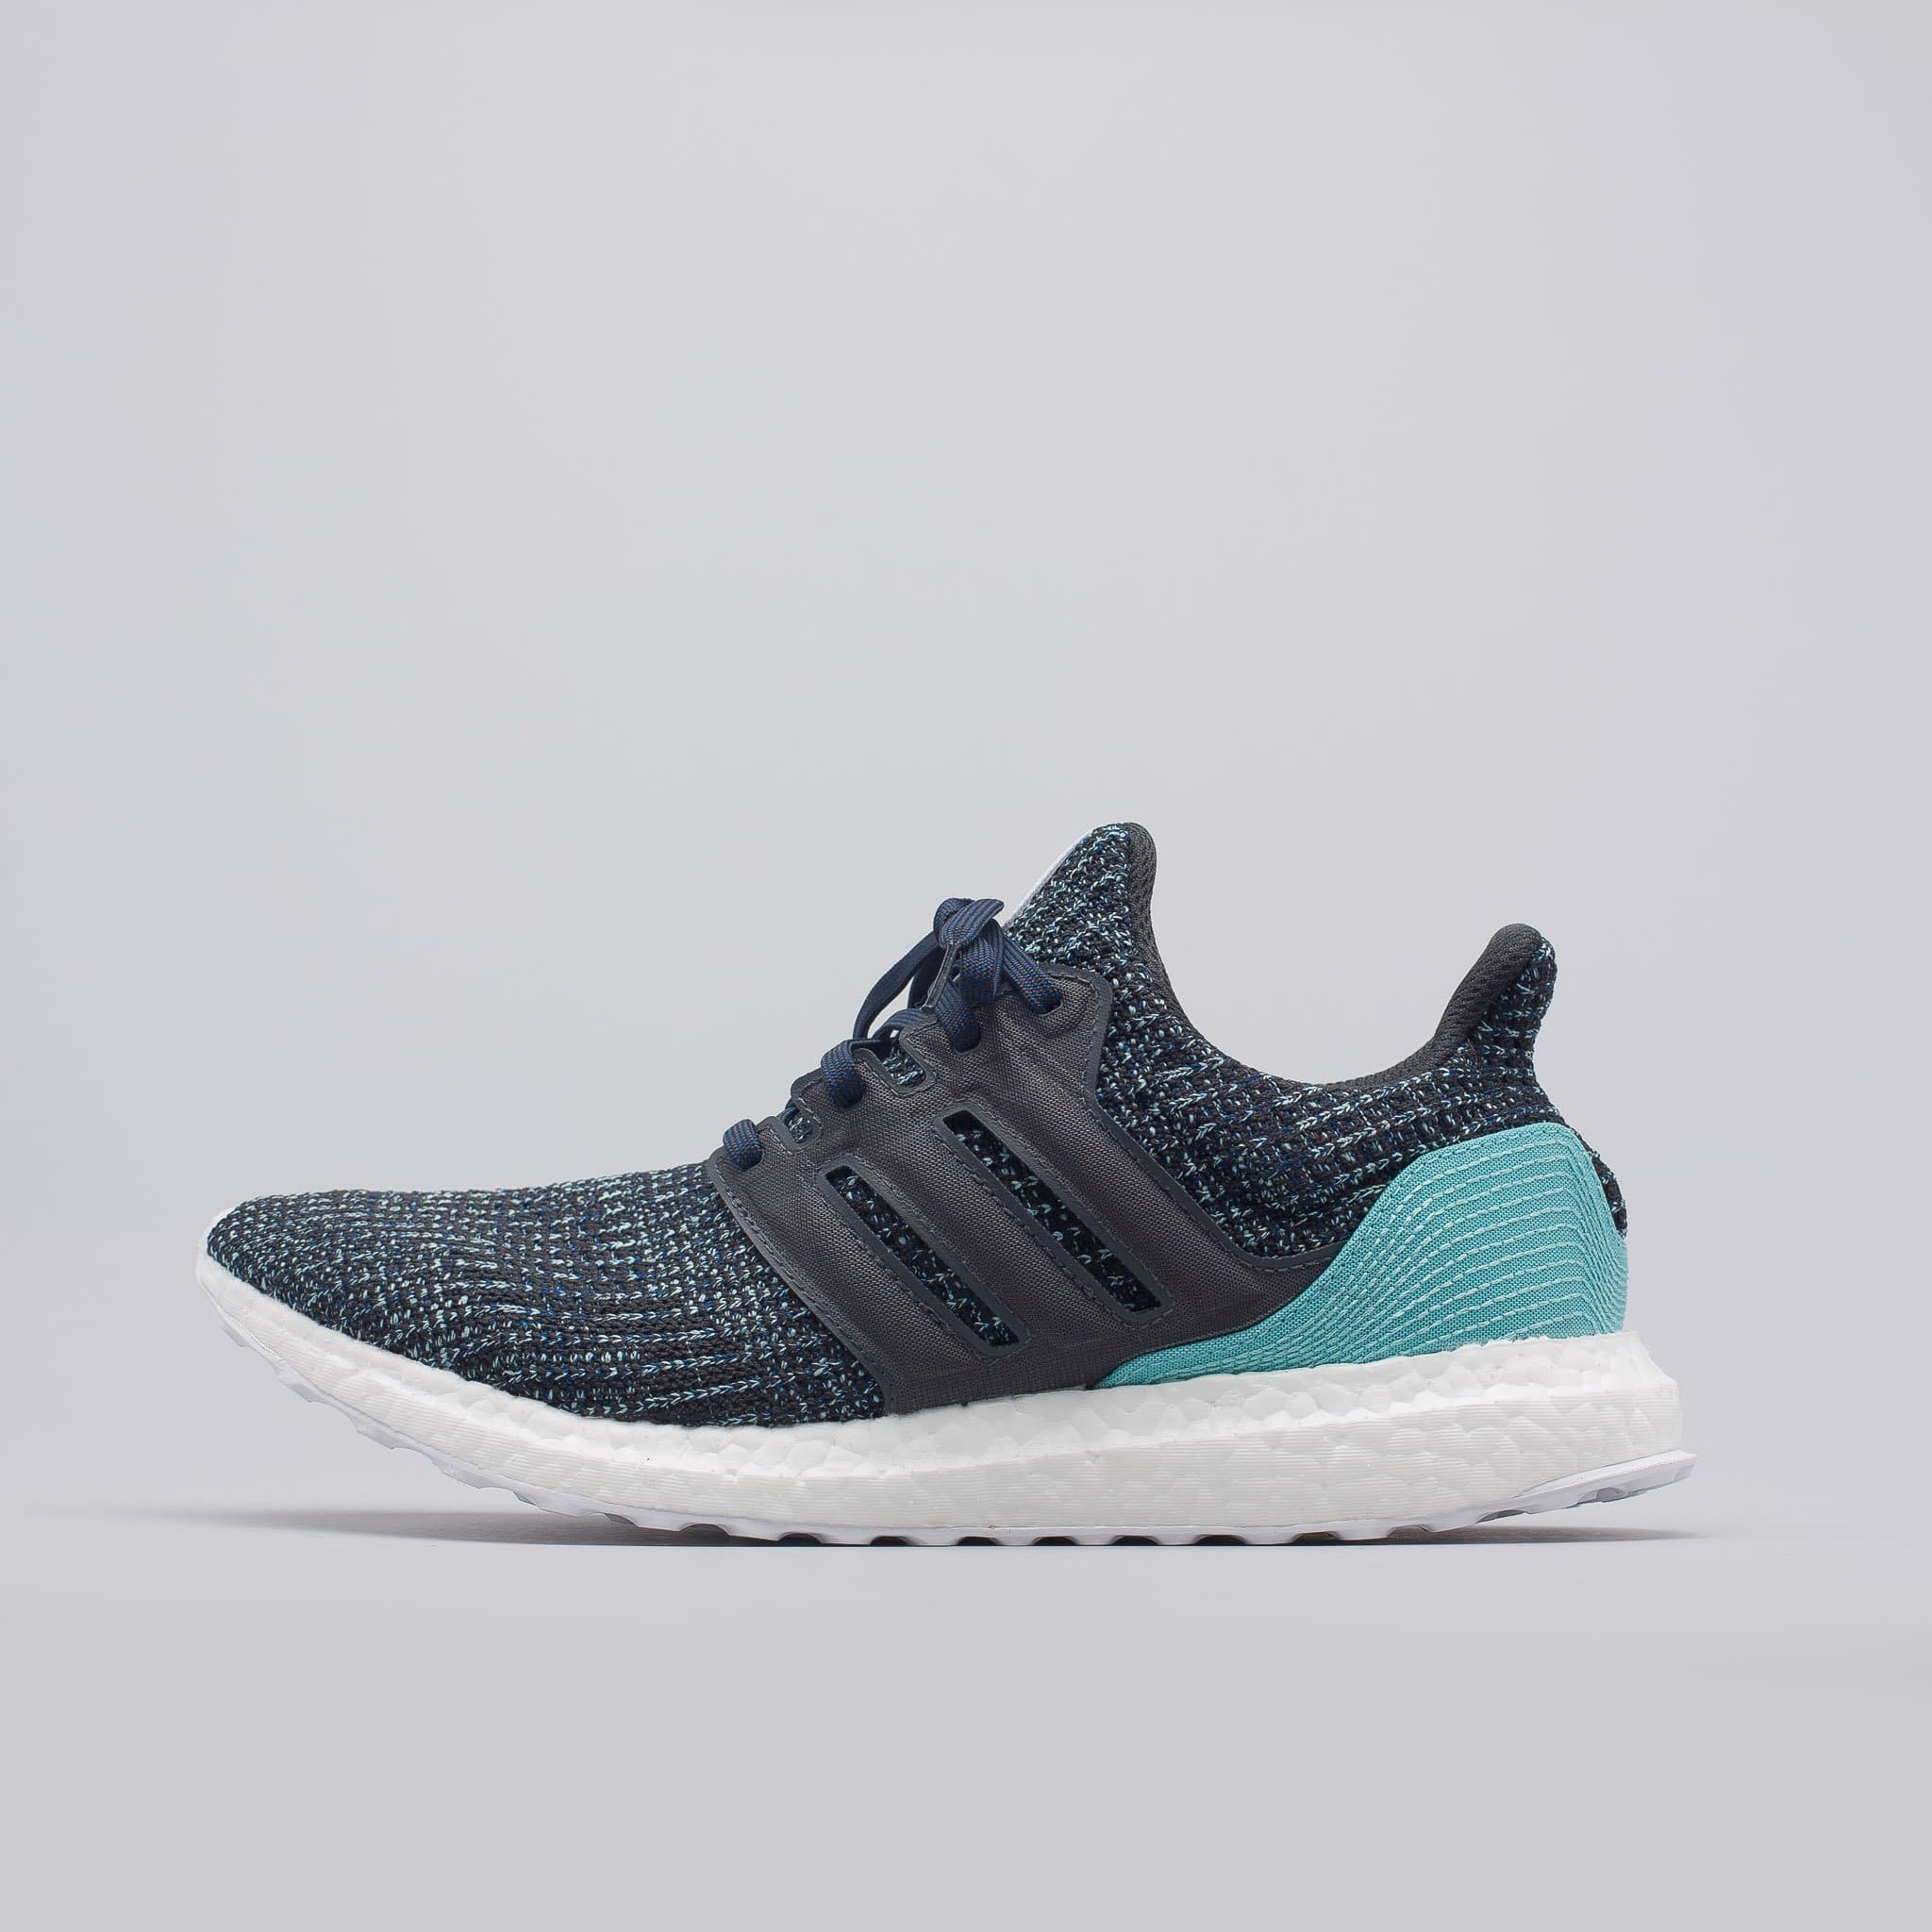 a9abccf8a adidas Men's Ultraboost Parley Running Shoes (Carbon) - Slickdeals.net